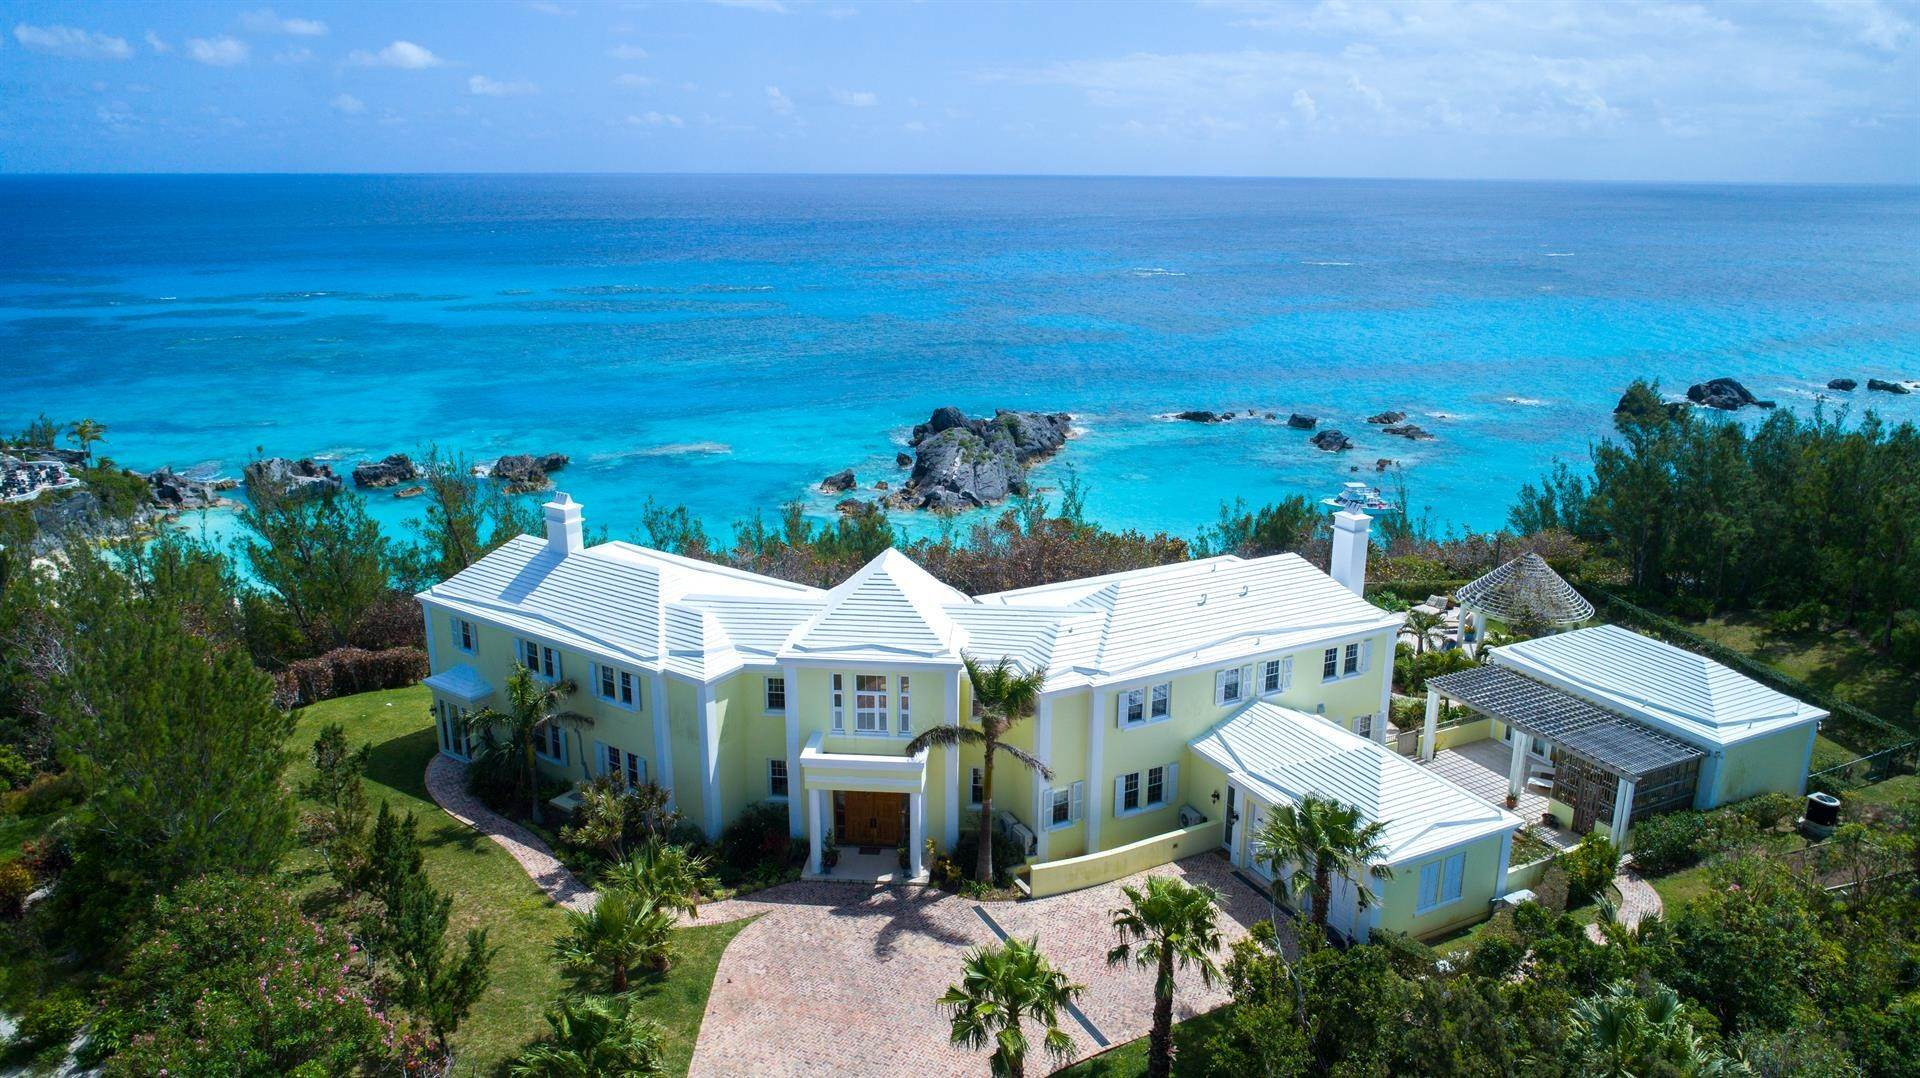 Single Family Homes for Sale at Duamber At The Fairmont Southampton Duamber At The Fairmont Southampton, 119 Harbour View Drive,Bermuda – Sinclair Realty